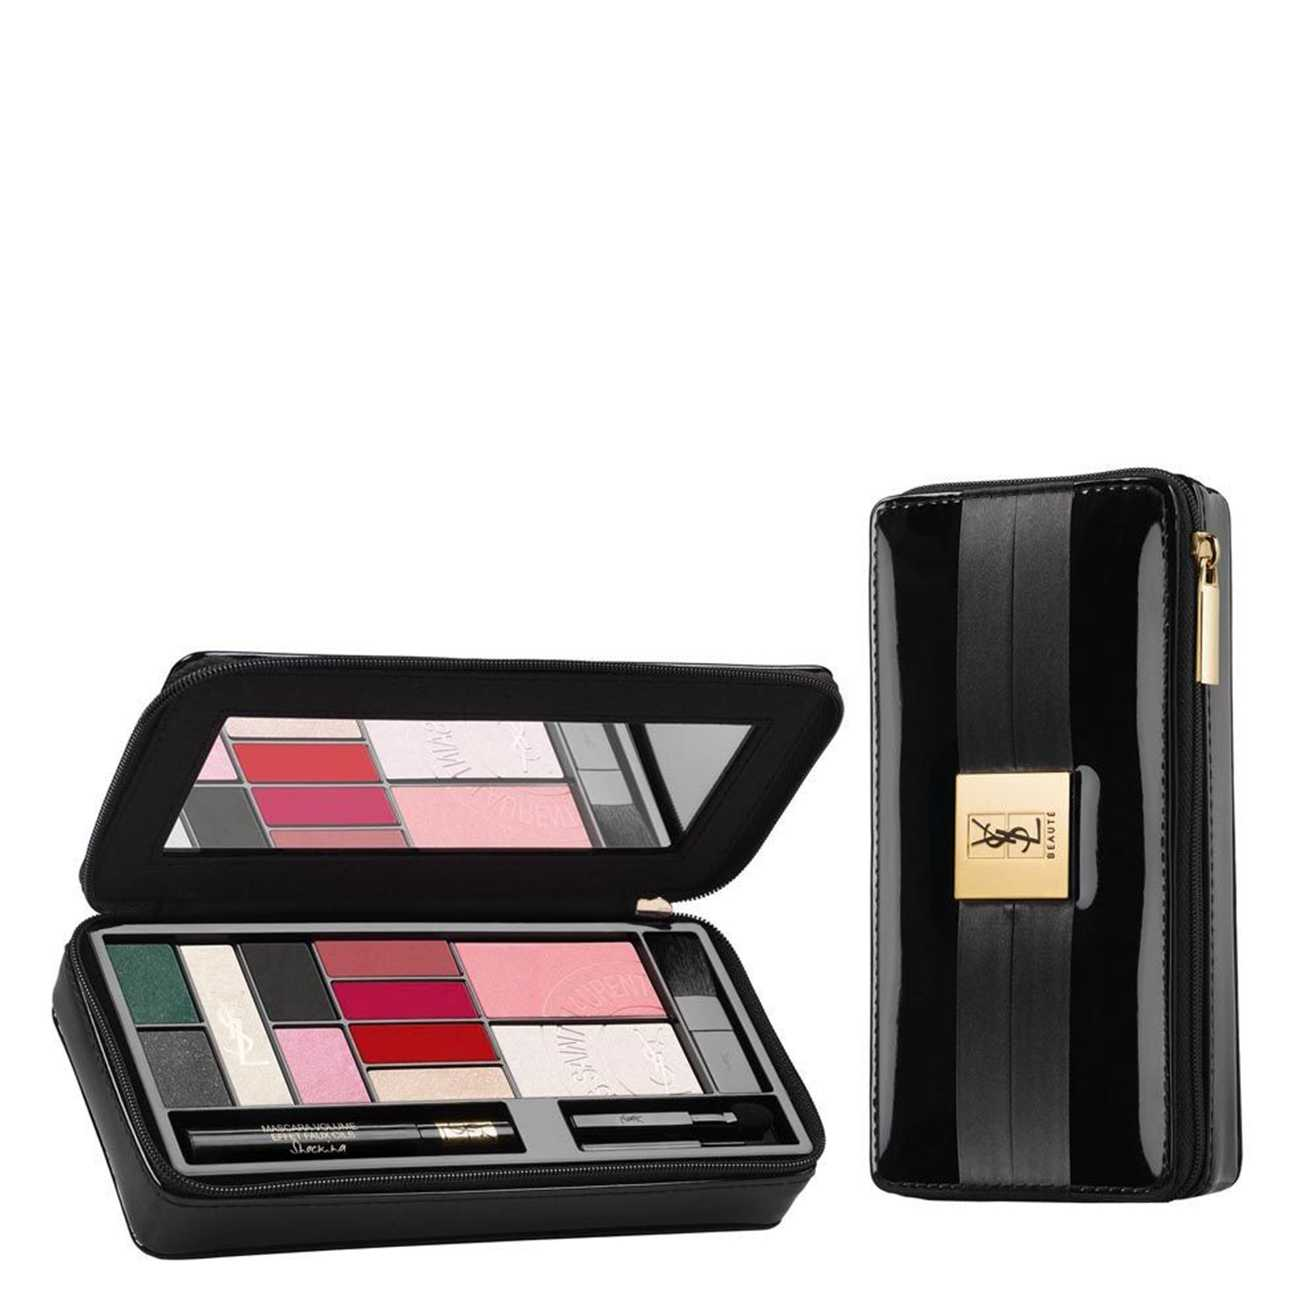 EXTREMELY TUXEDO MAKE-UP PALETTE 24 ML